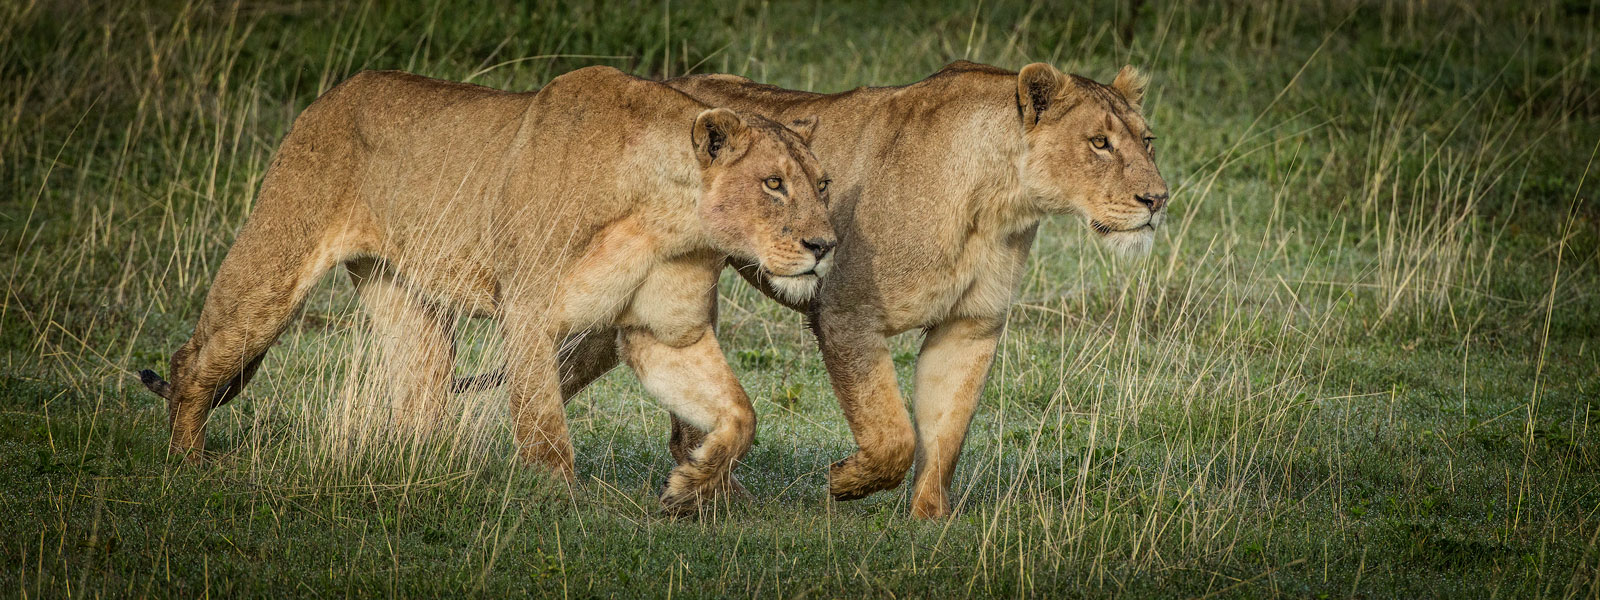 Two-Female-Lions-1600w-x-600h-copy